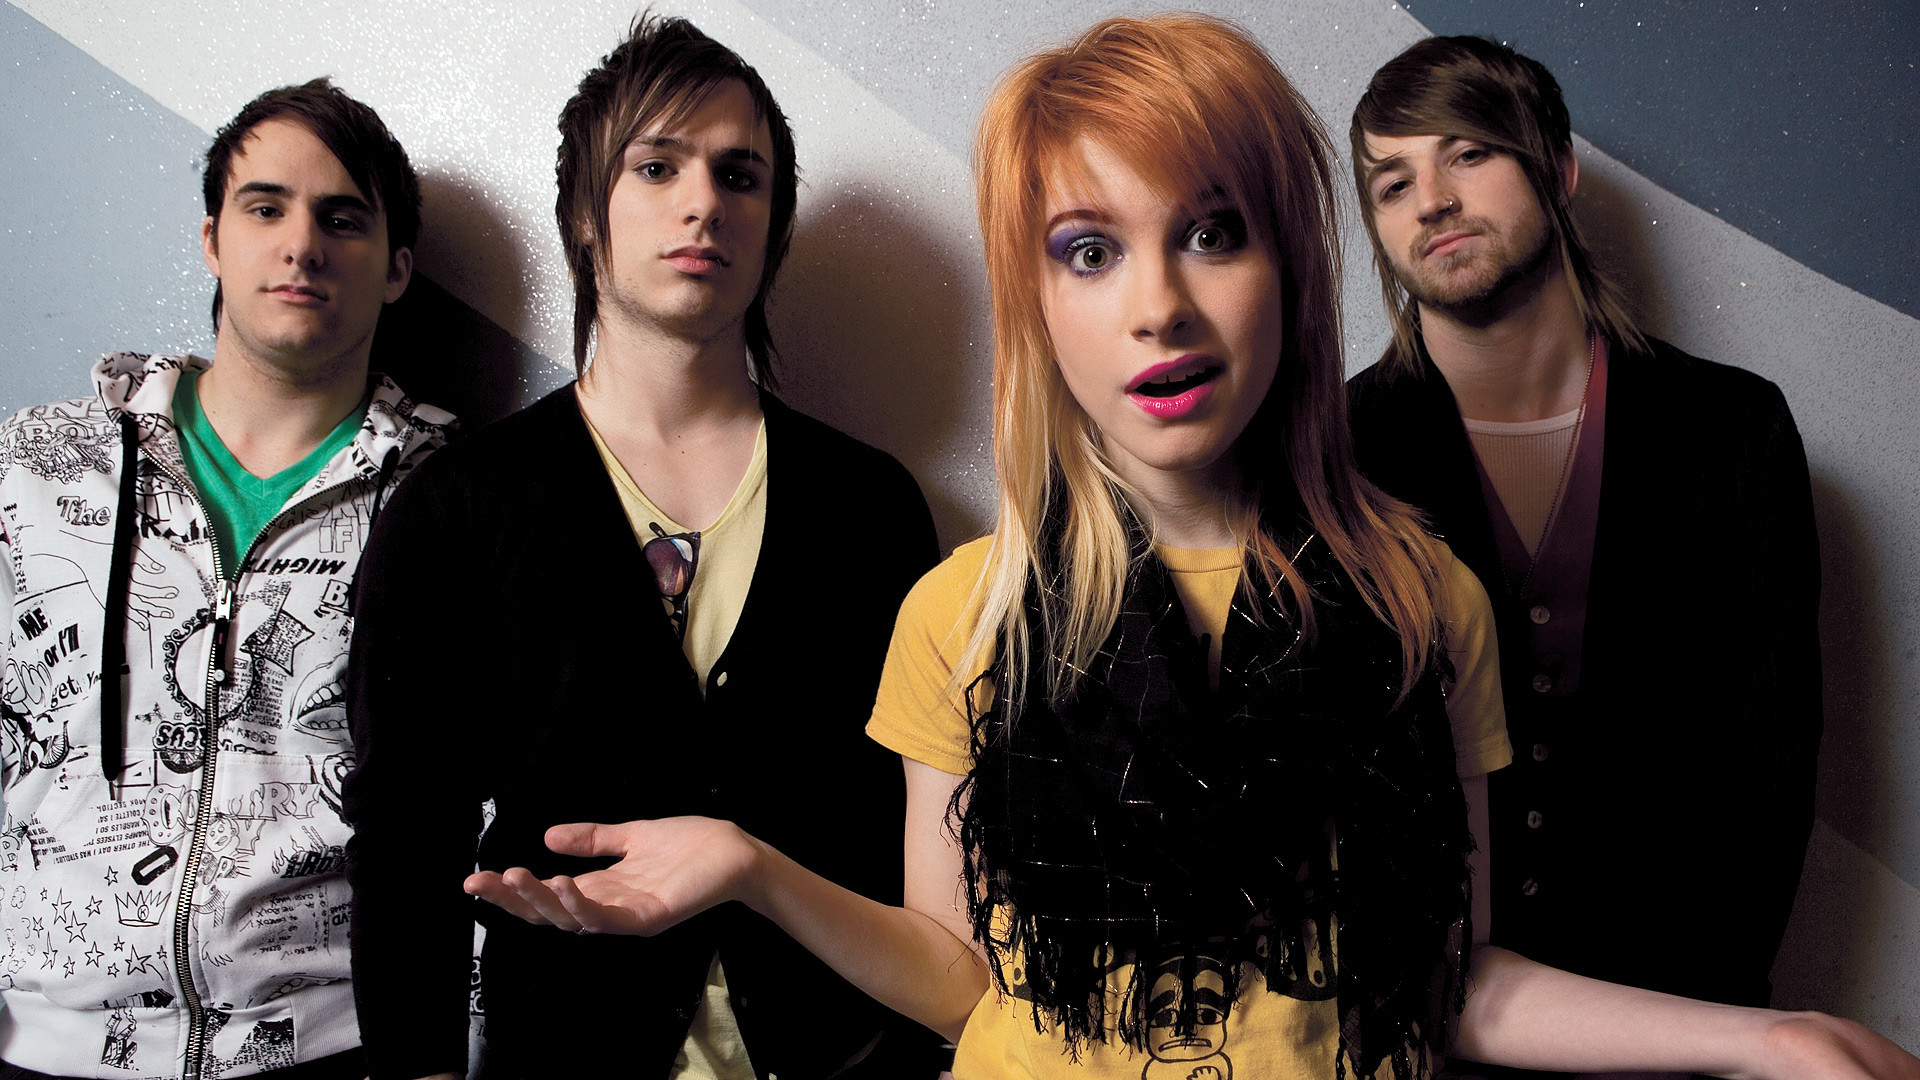 1920x1080 ... Huge Paramore PC Wallpapers, G.sFDcY Wallpapers ...